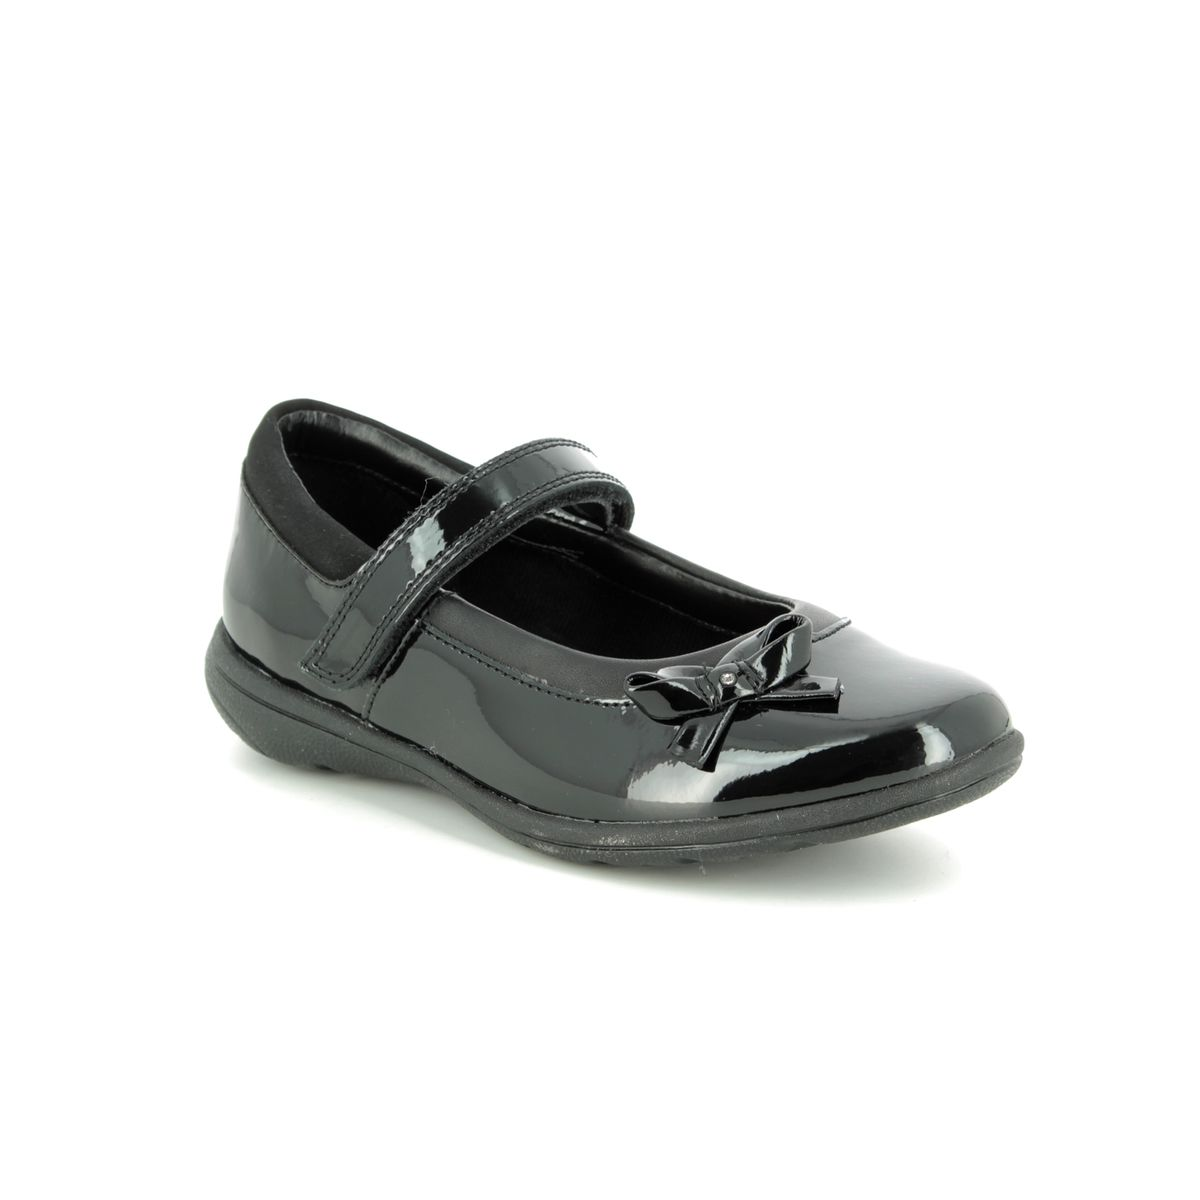 negocio Adelante Doctrina  Clarks Venture Star I G Fit Black patent school shoes